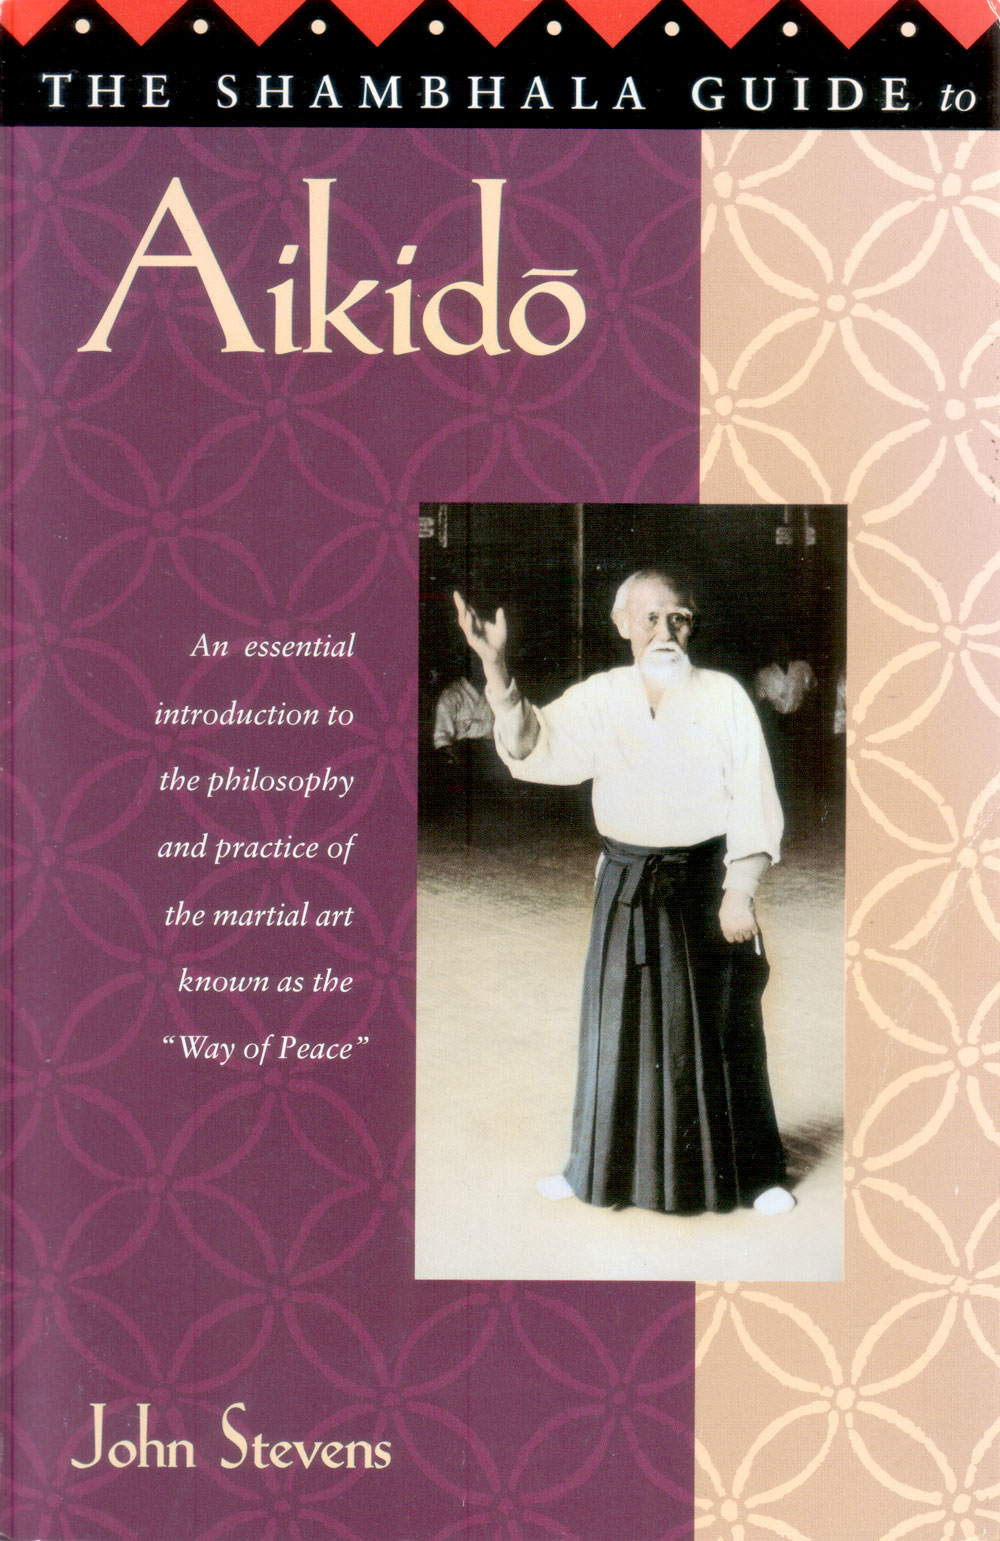 The Shamhala Guide to Aikidō&#13:An essential introduction to the philosophy and practice